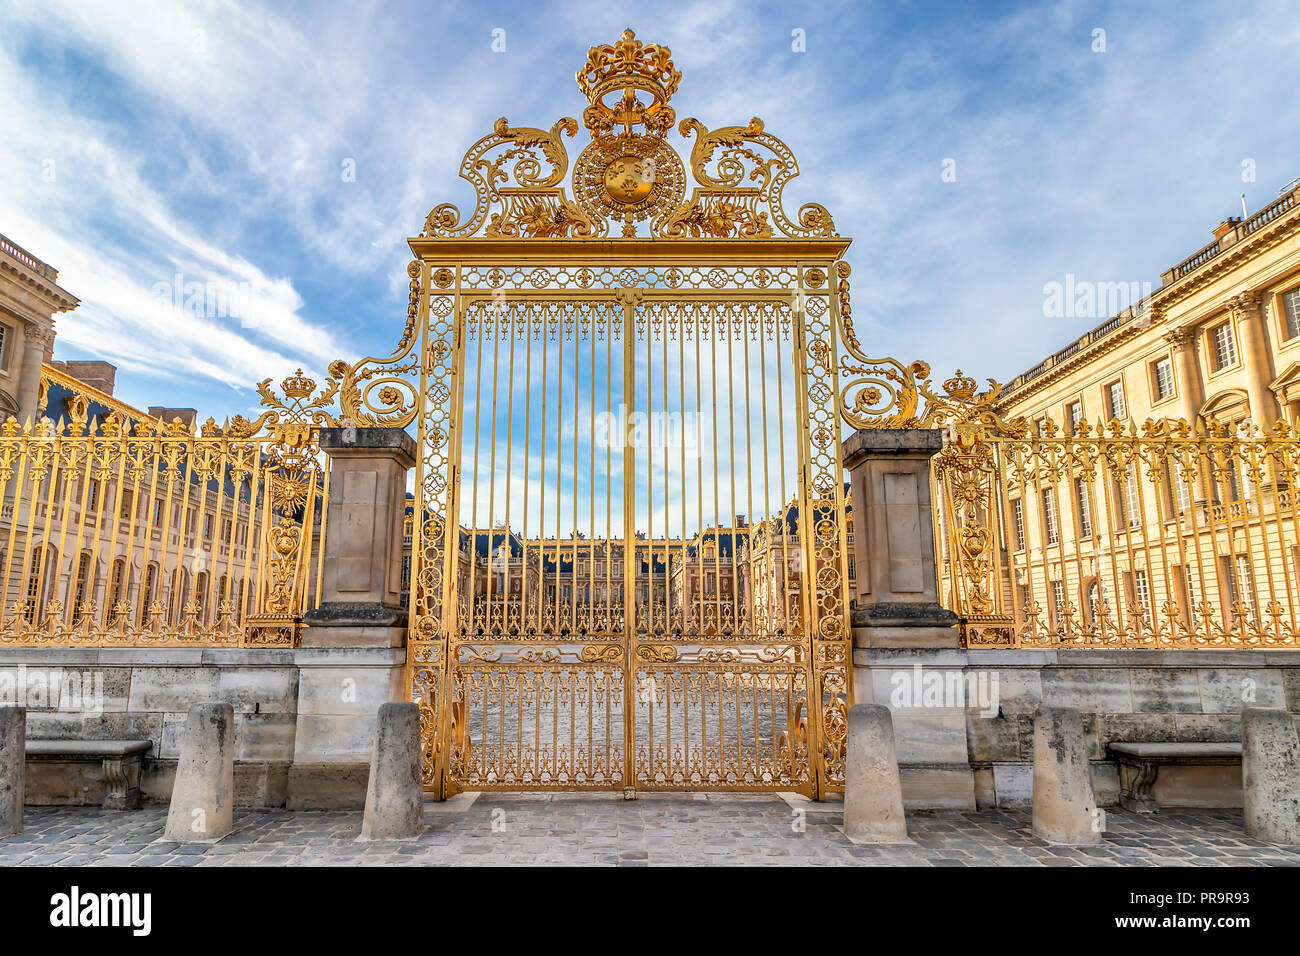 Main golden door in exterior facade of Versailles Palace, Paris, France - Stock Image